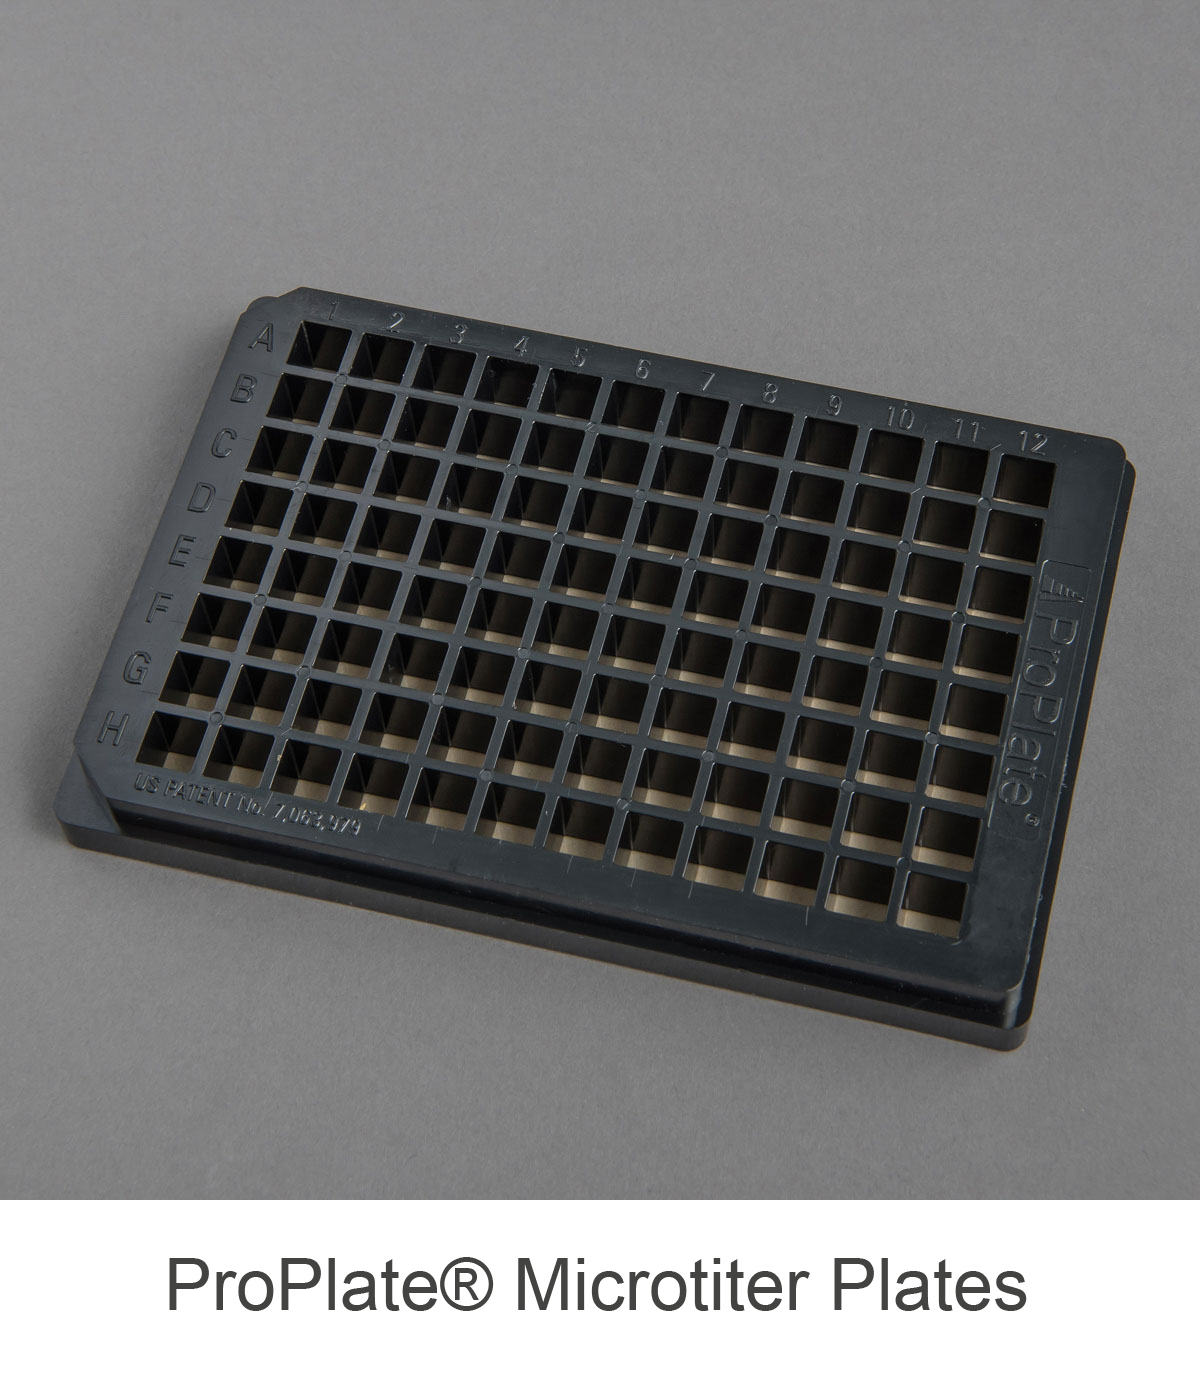 ProPlate® Microtiter Plates